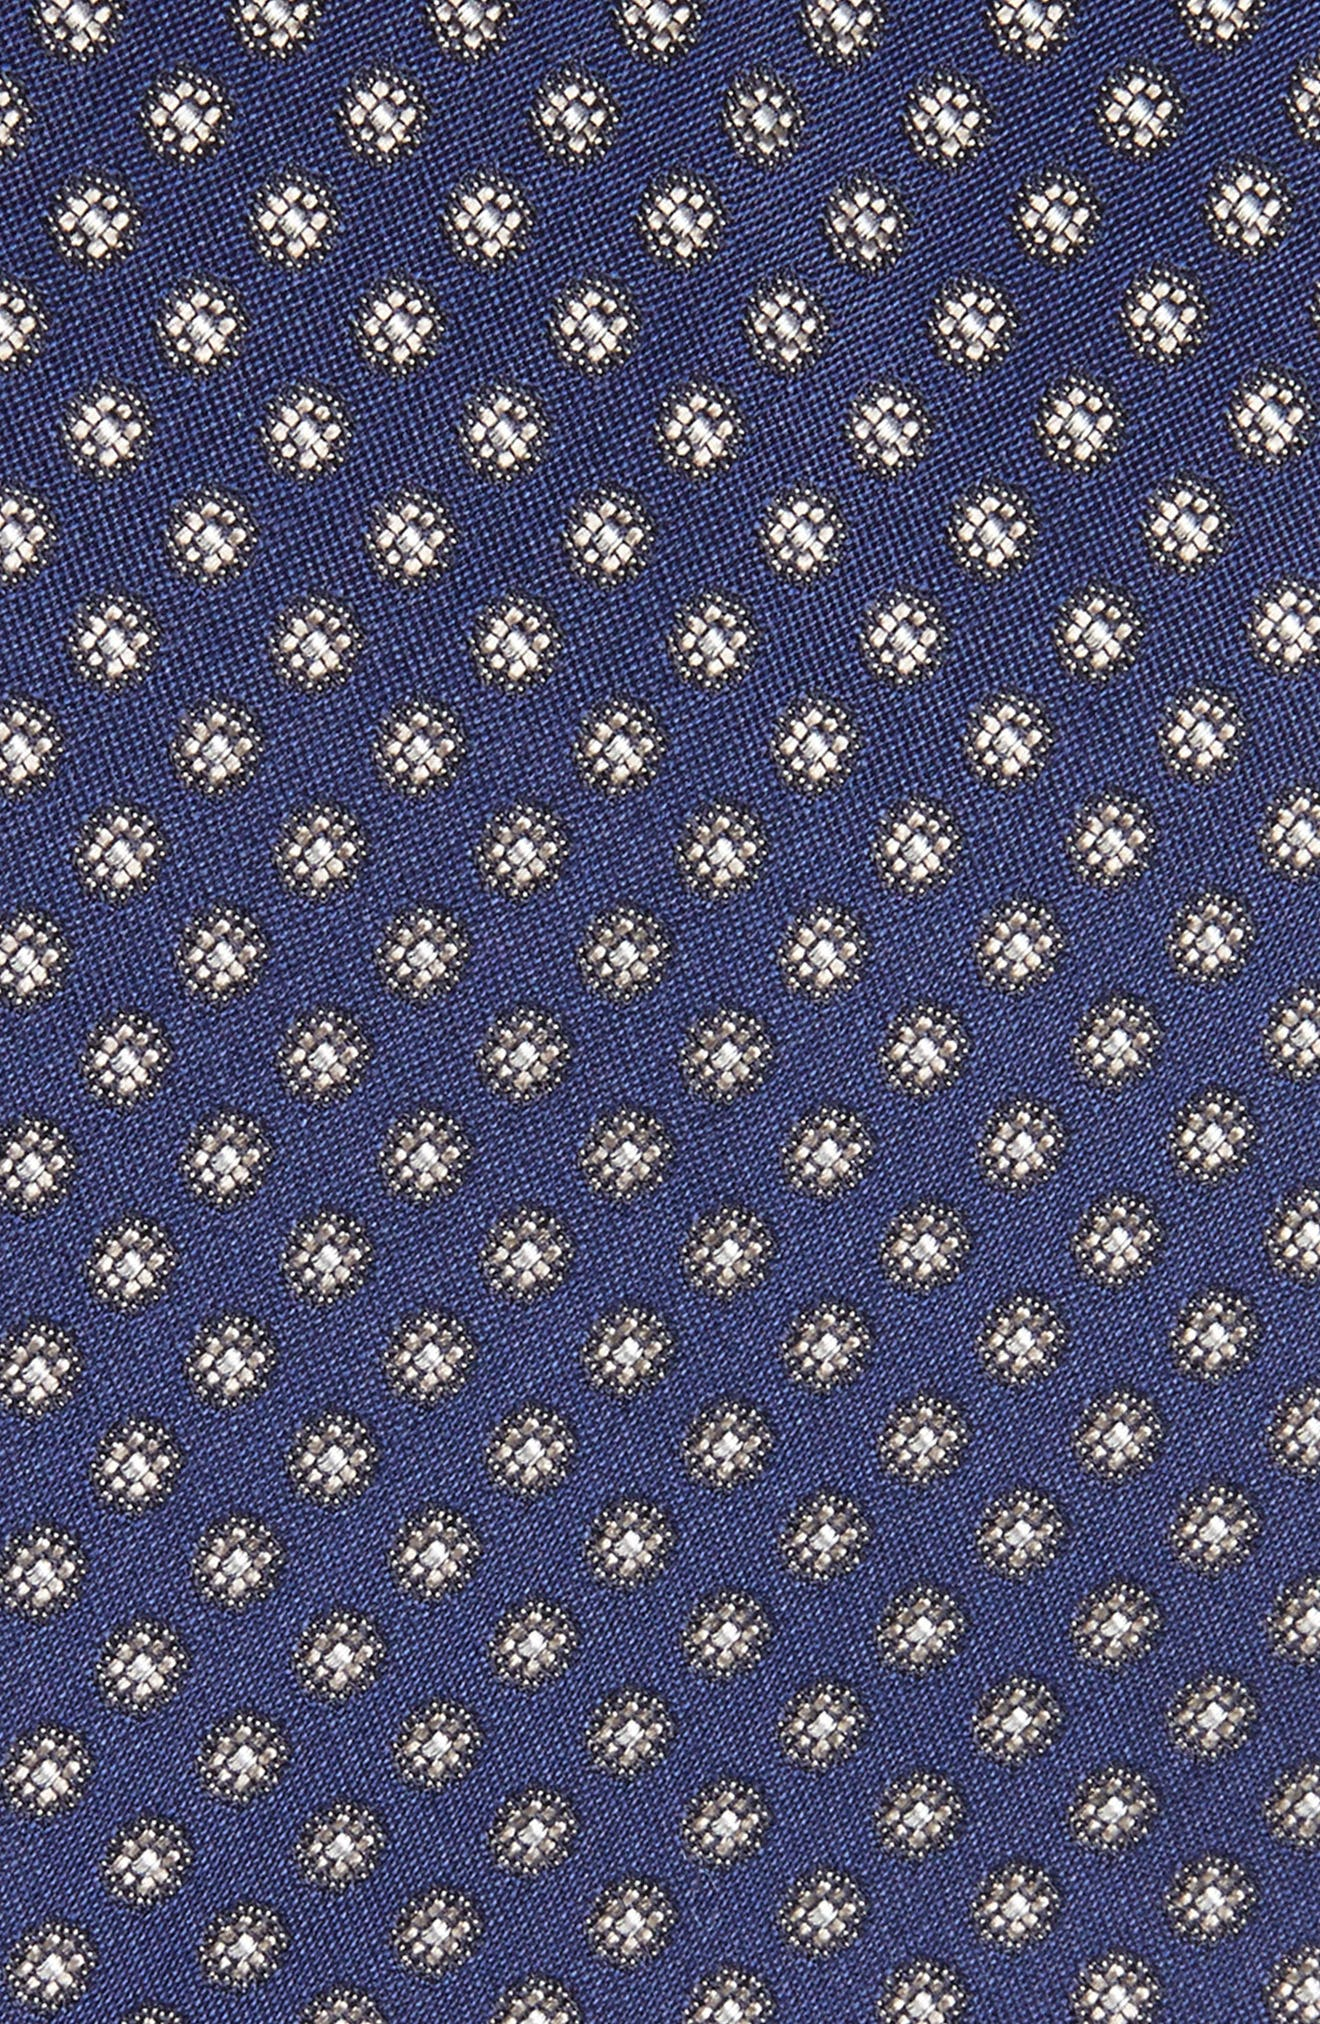 Floral Silk Tie,                             Alternate thumbnail 2, color,                             NAVY/ BROWN